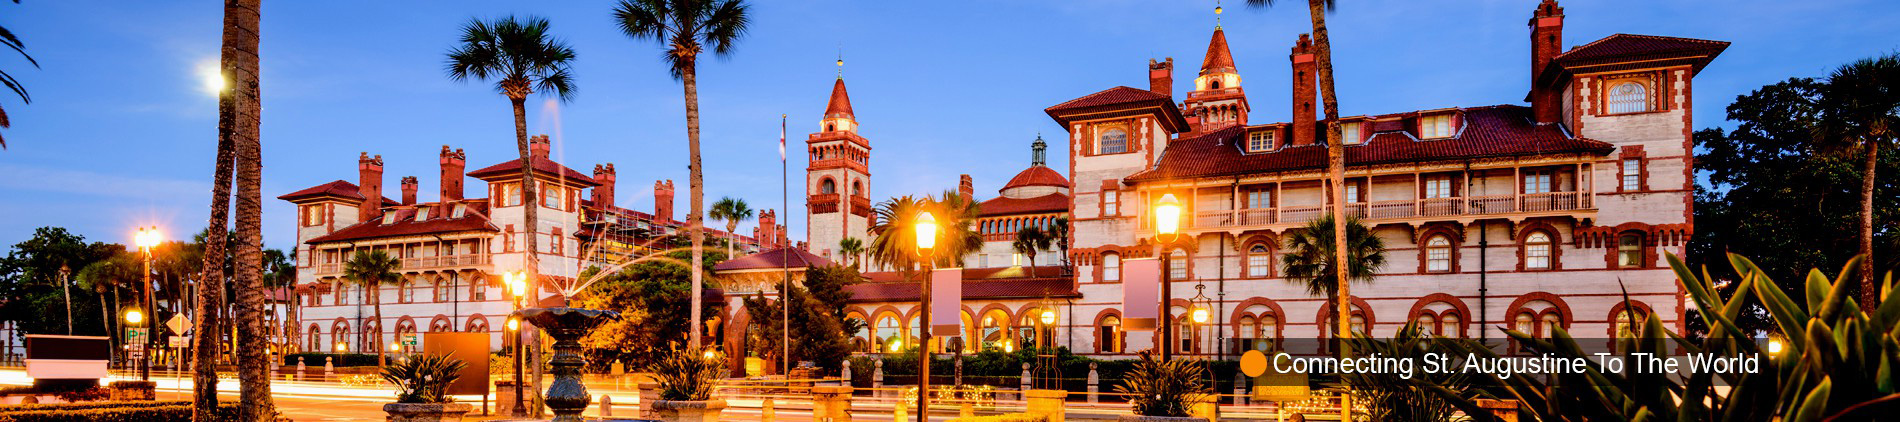 bed and breakfasts | st. augustine, fl | oldcity